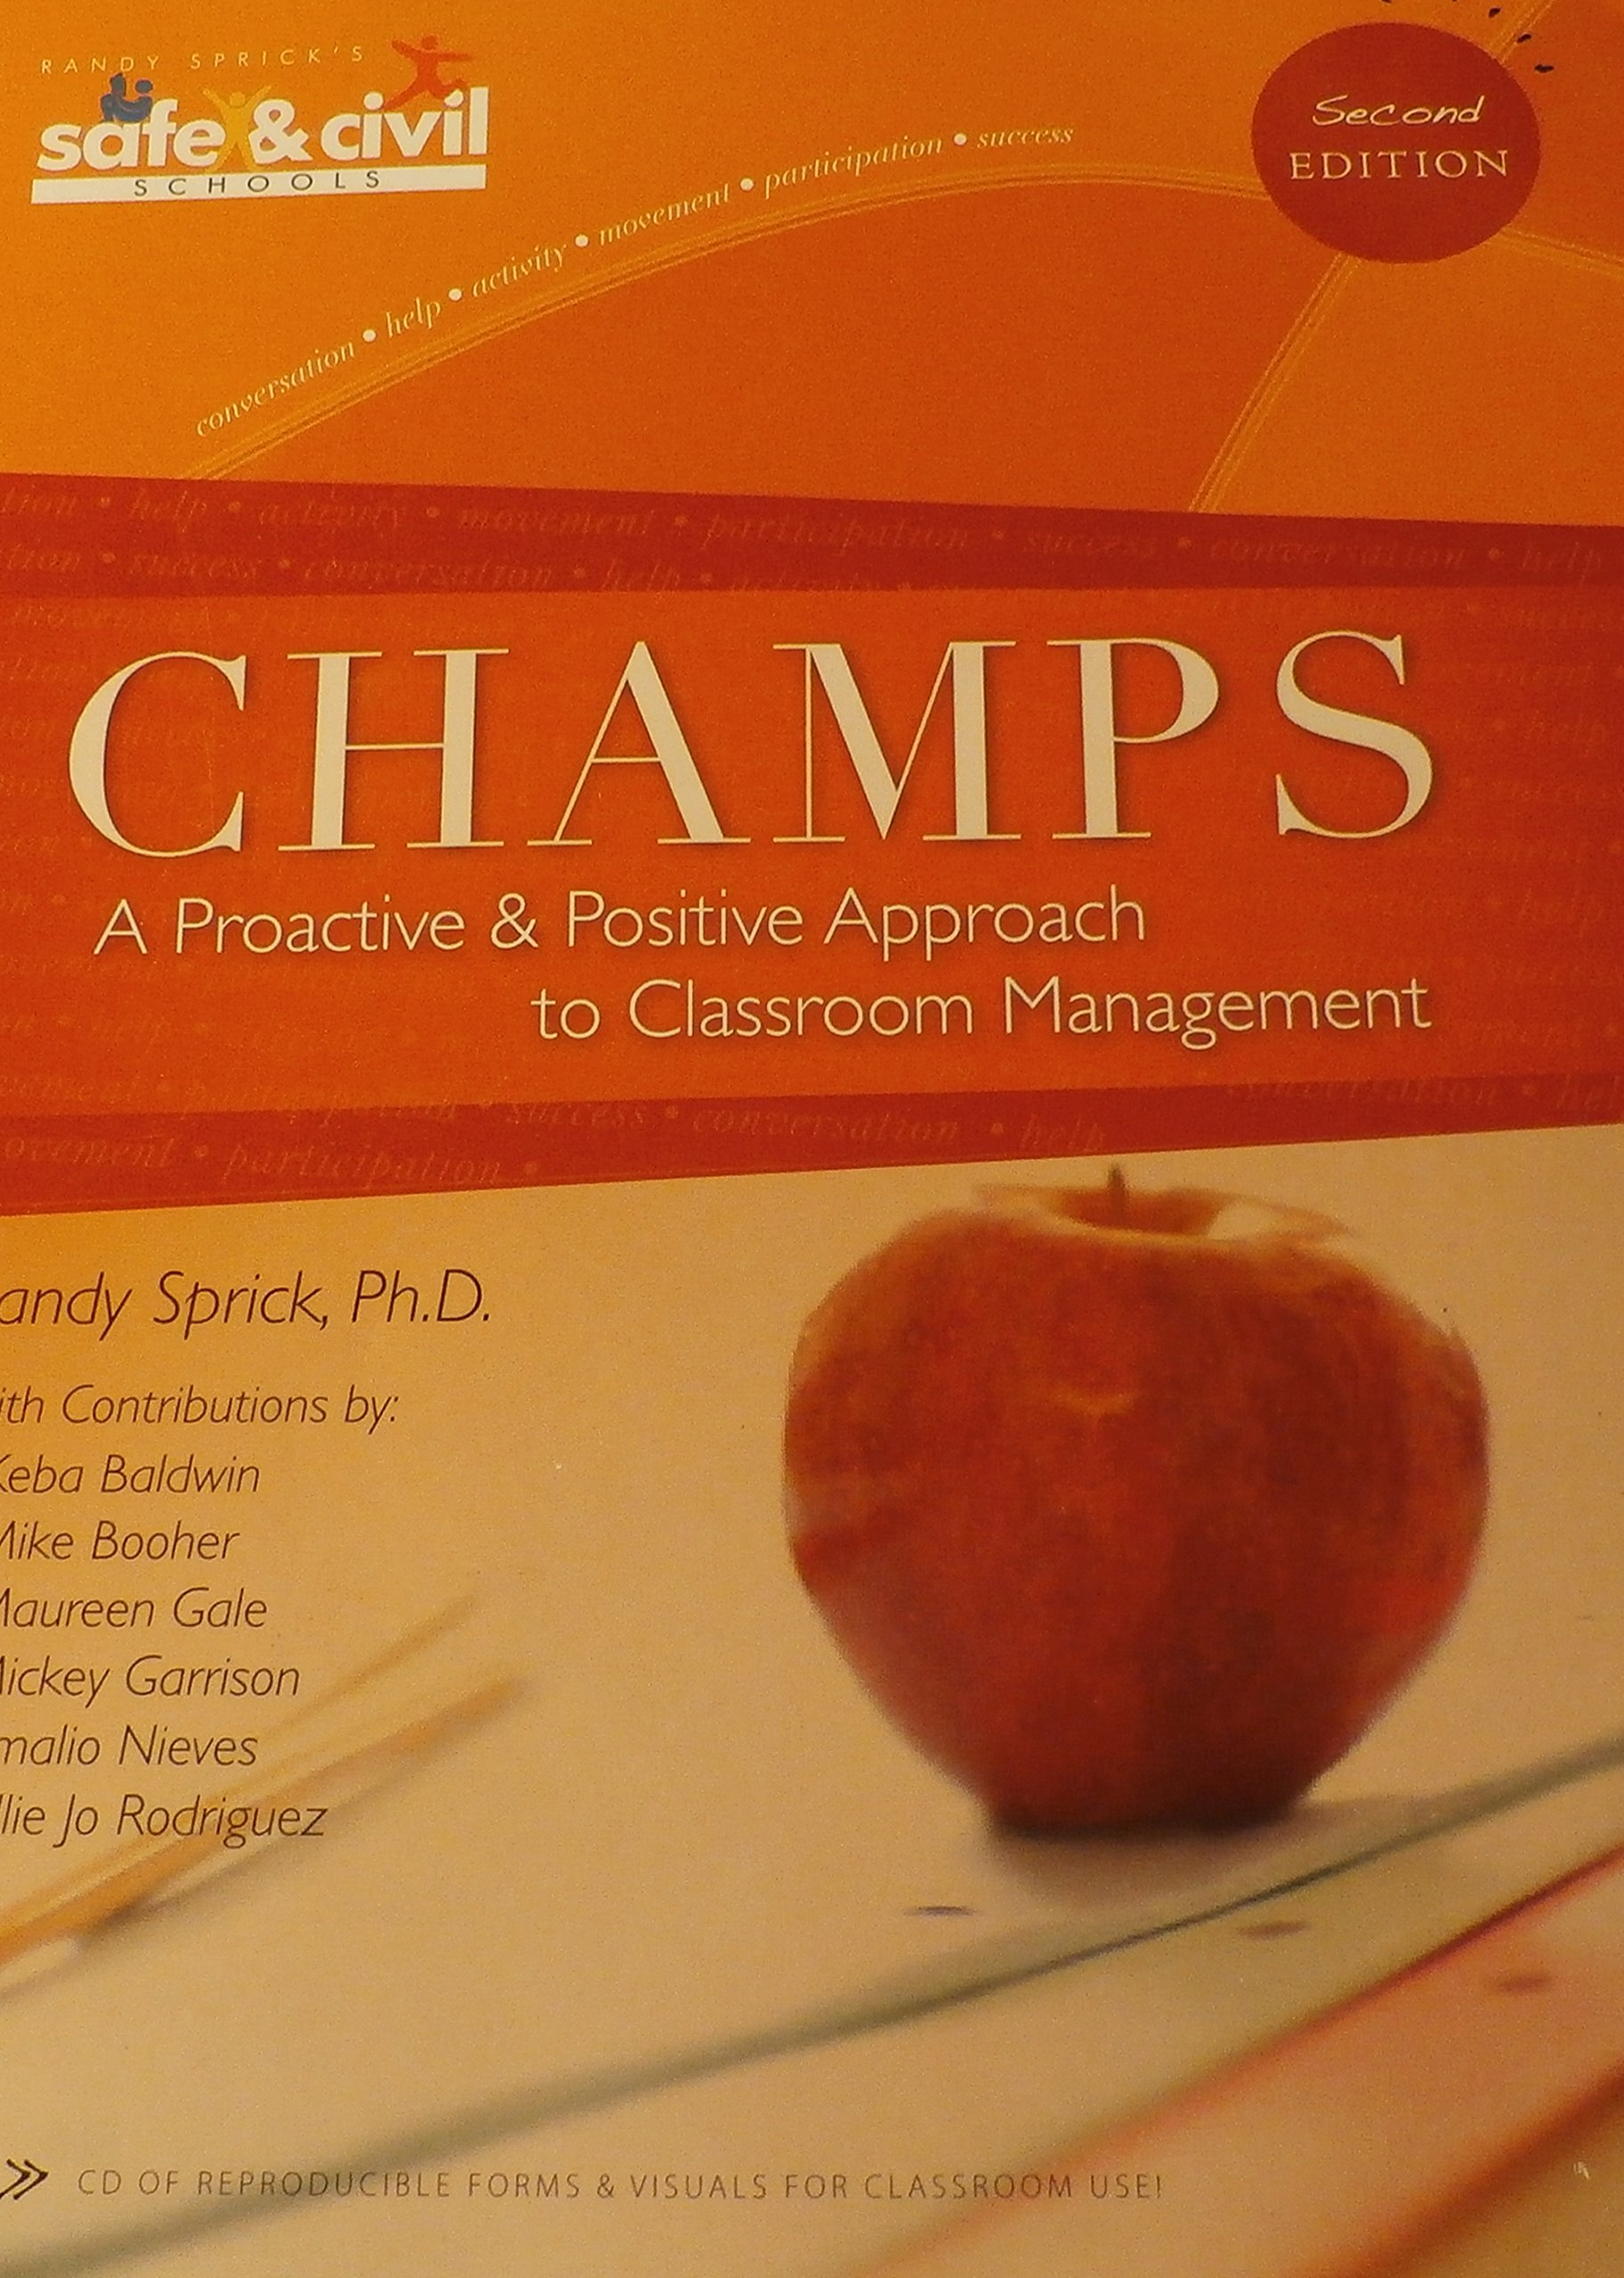 Champs: A Proactive And Positive Approach To Classroom Management, 2nd  Edition: Randy Sprick How To Properly Cite